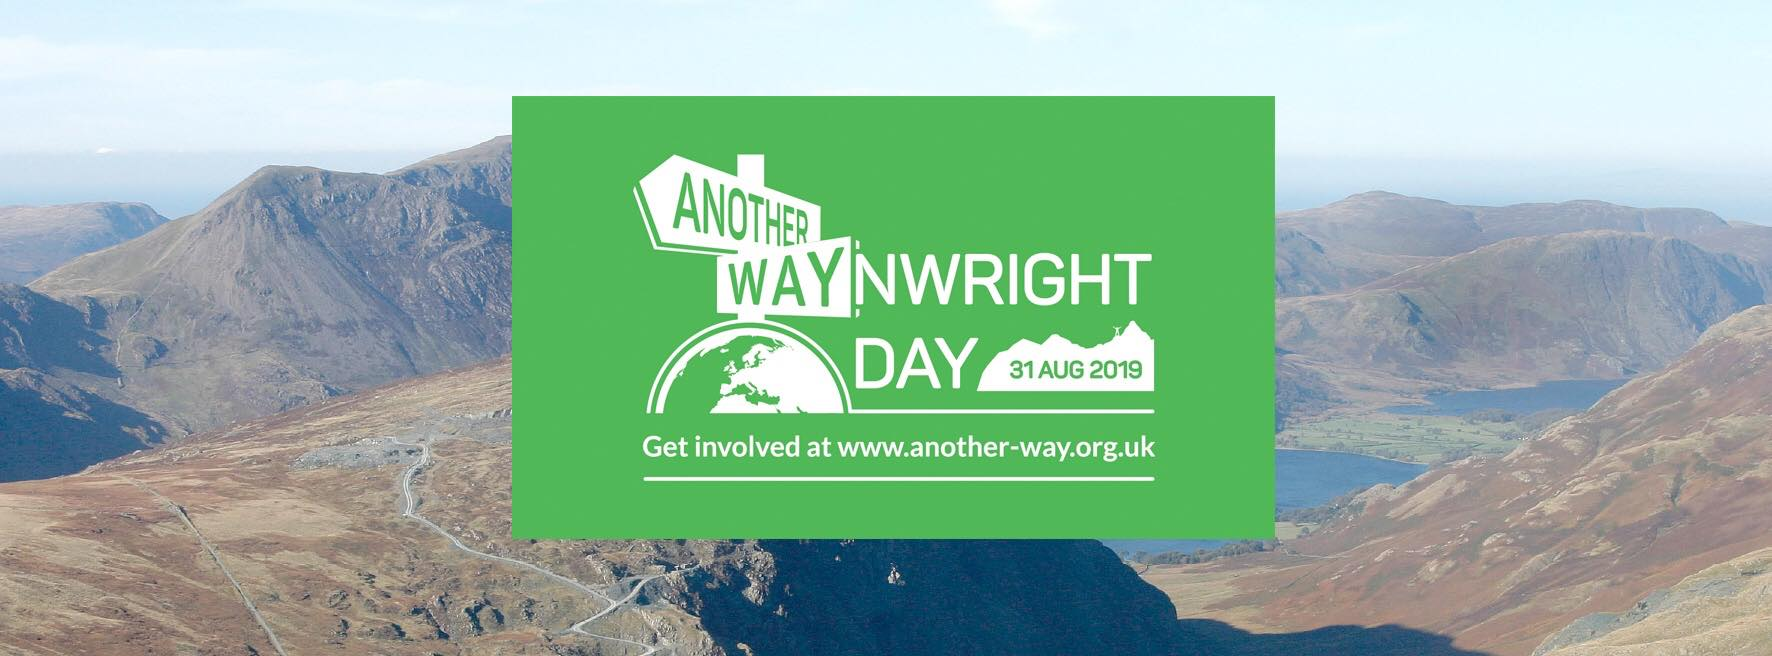 Another Waynwright Day Header.jpg